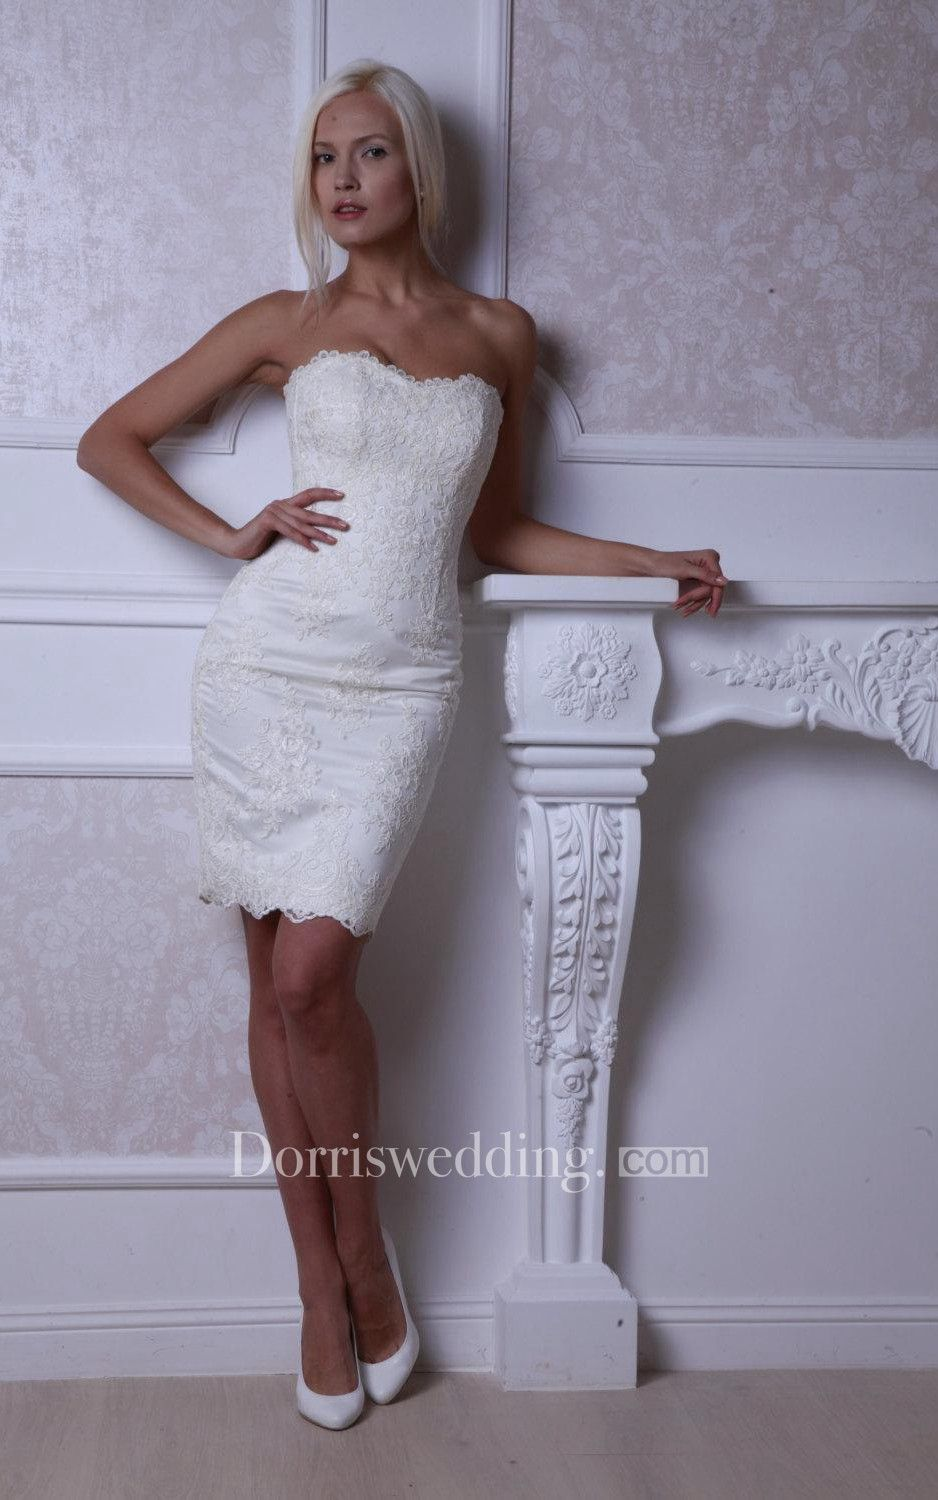 Form Fitted Strapless Short Lace Dress With Lace Up Back Fitted Lace Wedding Dress Short Wedding Gowns Short Bridal Dress